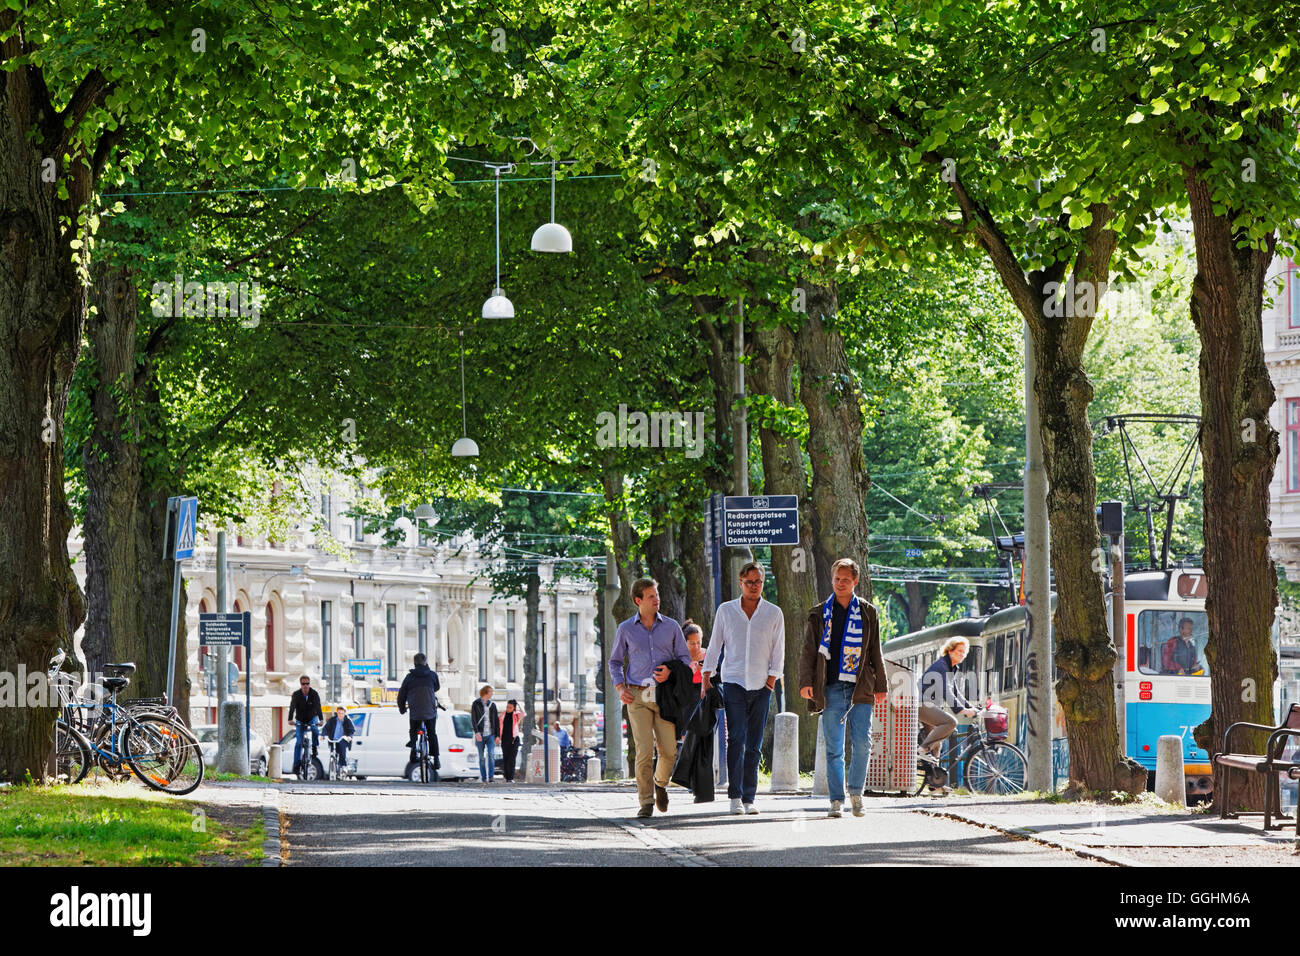 People strolling through the Parkgatan, Gothenburg, Sweden - Stock Image